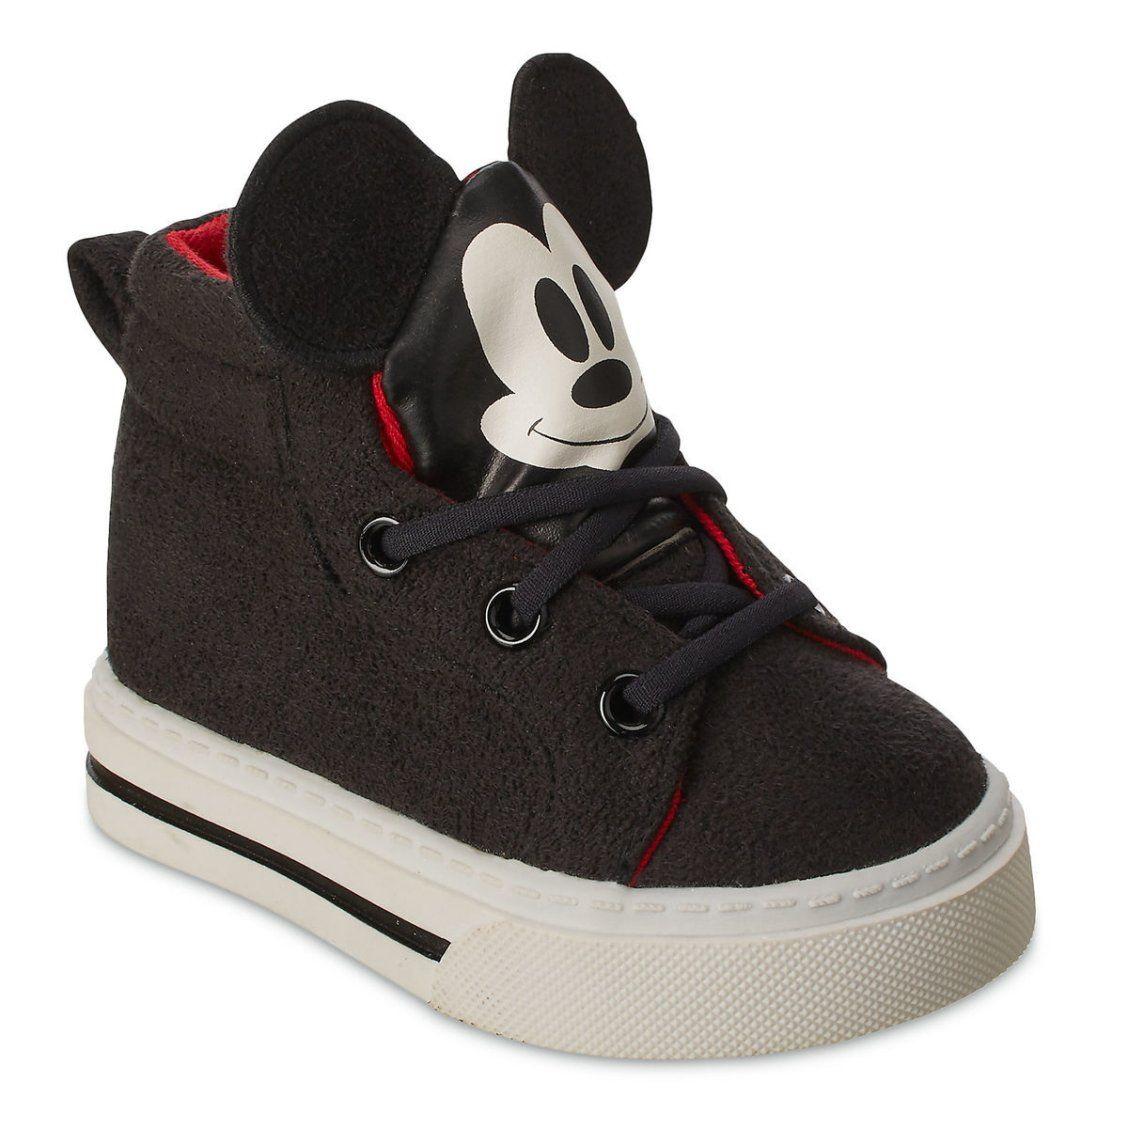 Toddler boy shoes, Mickey mouse shoes